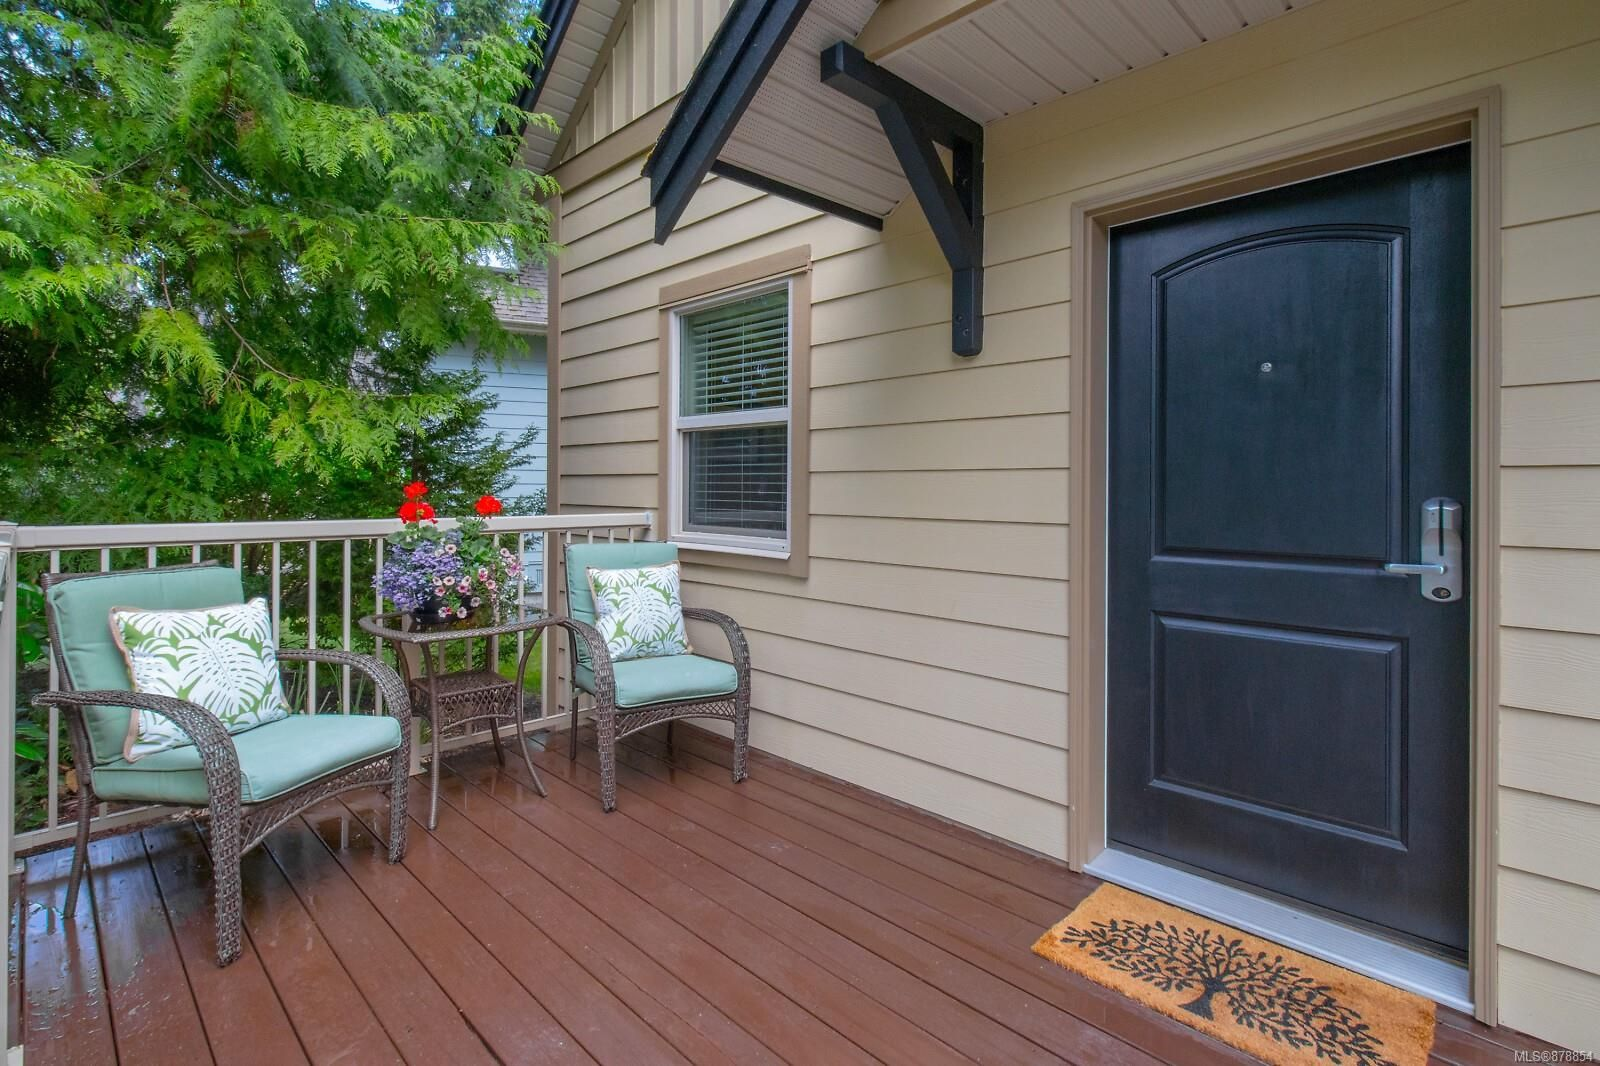 Photo 2: Photos: 223 1130 Resort Dr in : PQ Parksville Row/Townhouse for sale (Parksville/Qualicum)  : MLS®# 878854